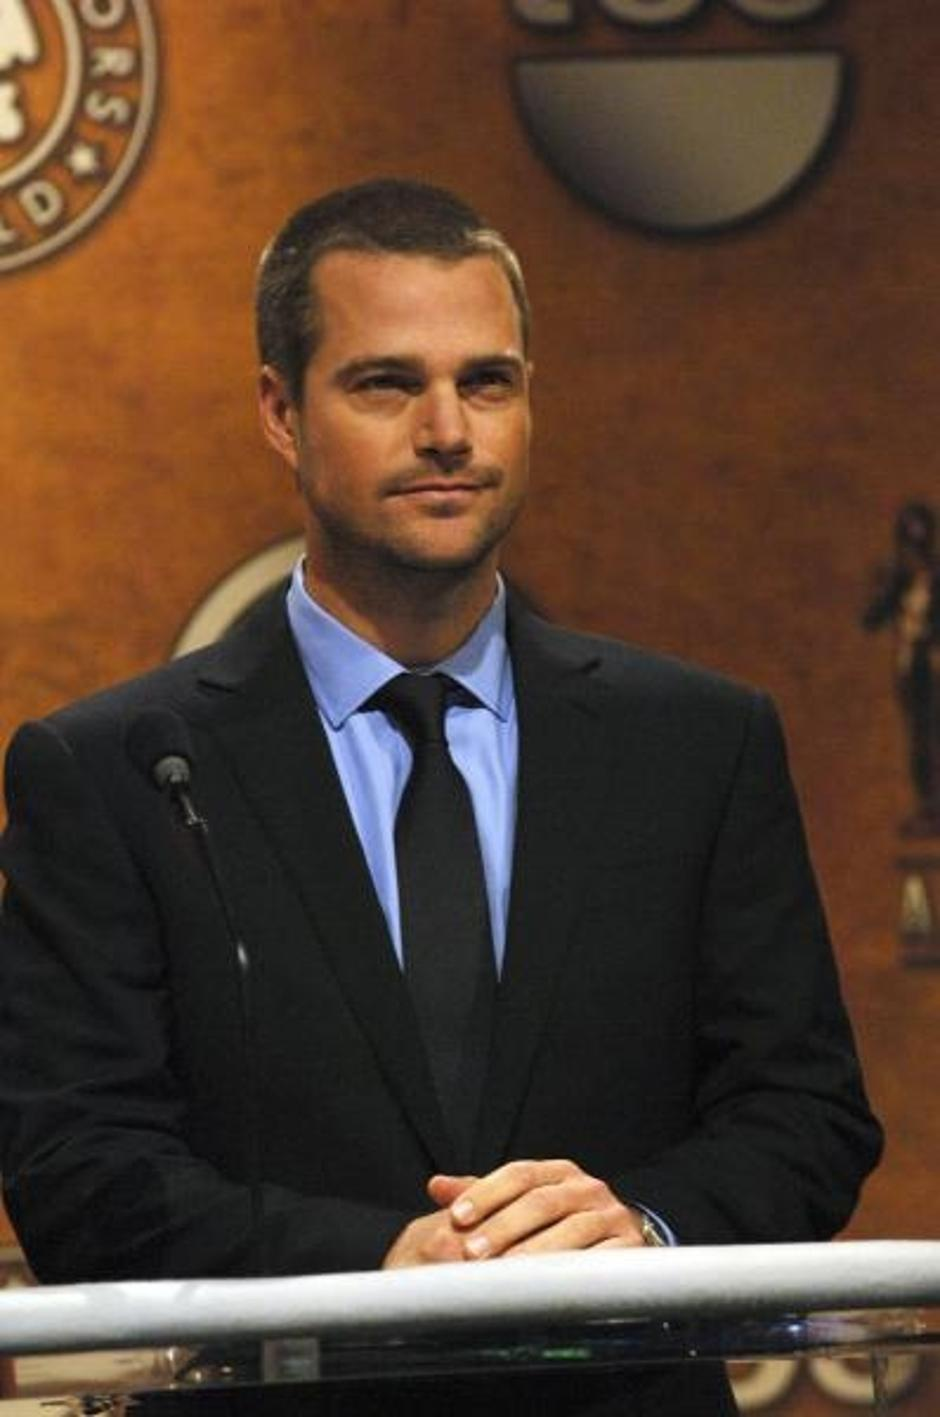 Chris O'Donnell | Author: APEGA/Press Association/PIXSELL